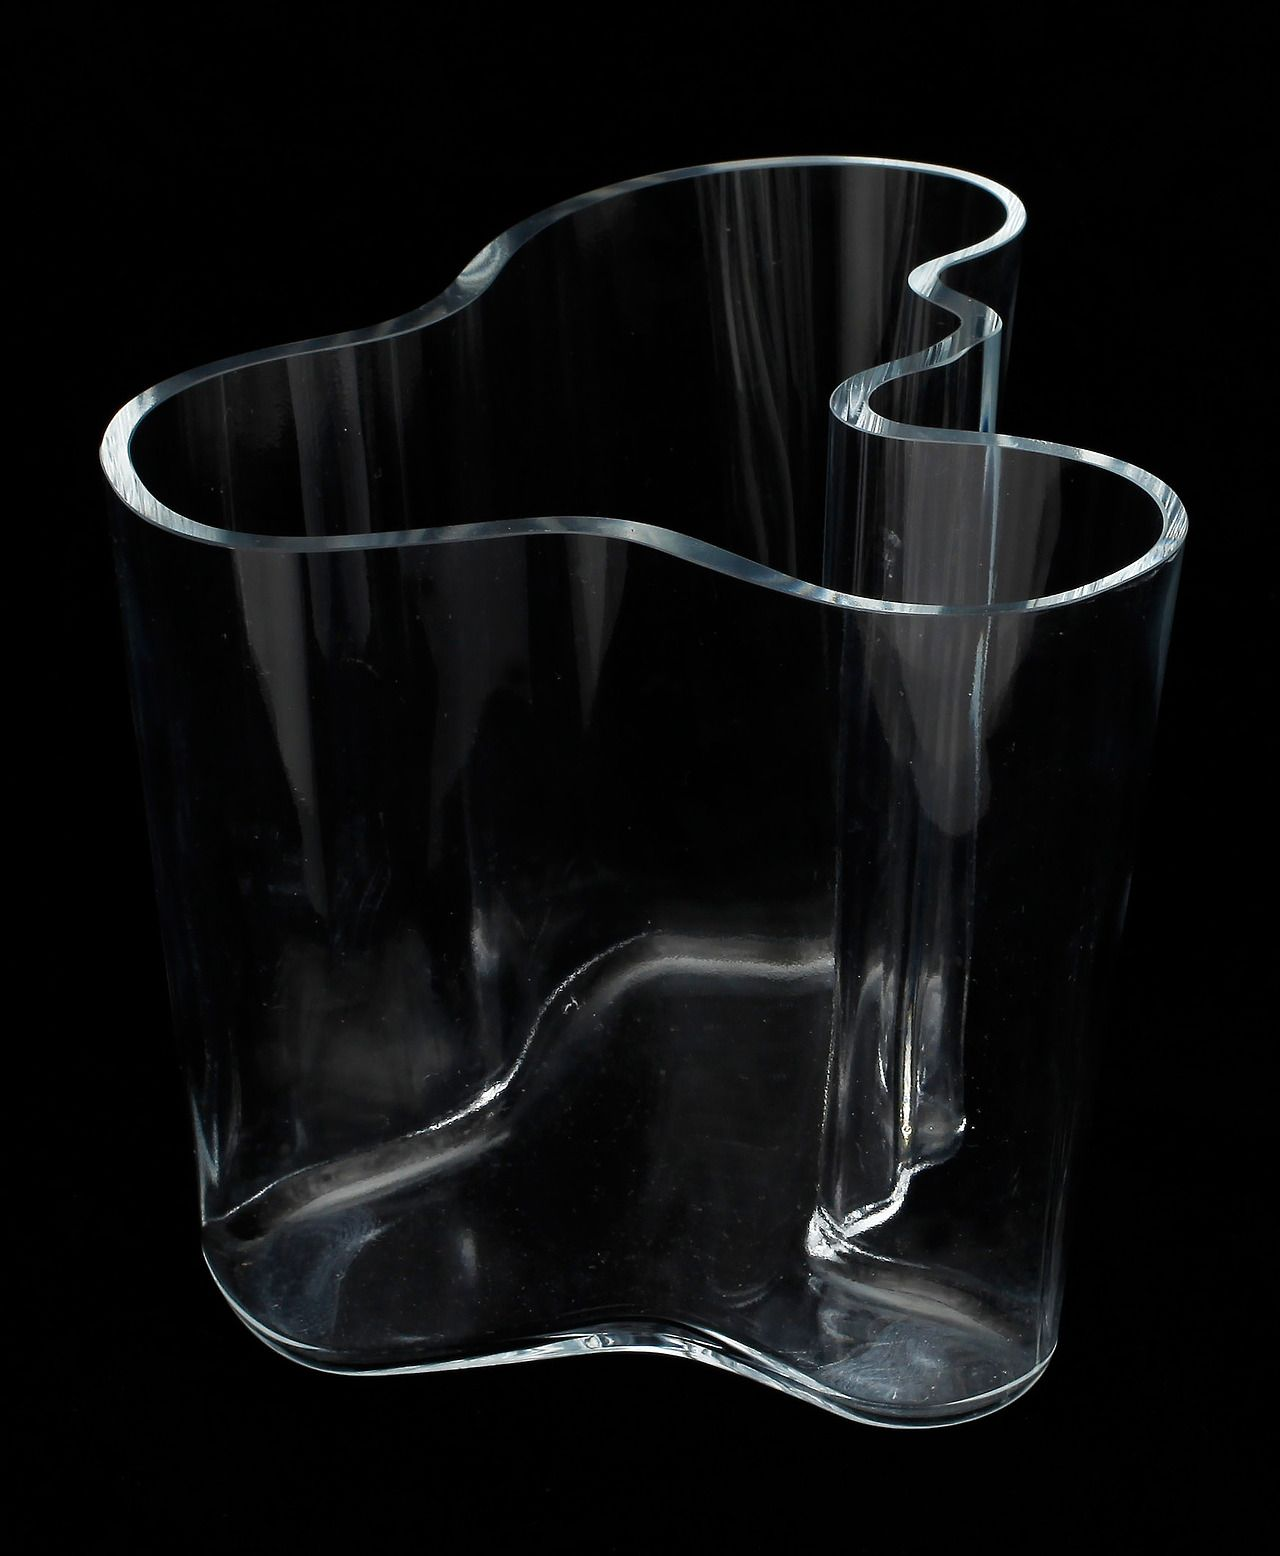 alvar aalto savoy vase 1936 originally designed for the karhula iittala glass competition. Black Bedroom Furniture Sets. Home Design Ideas